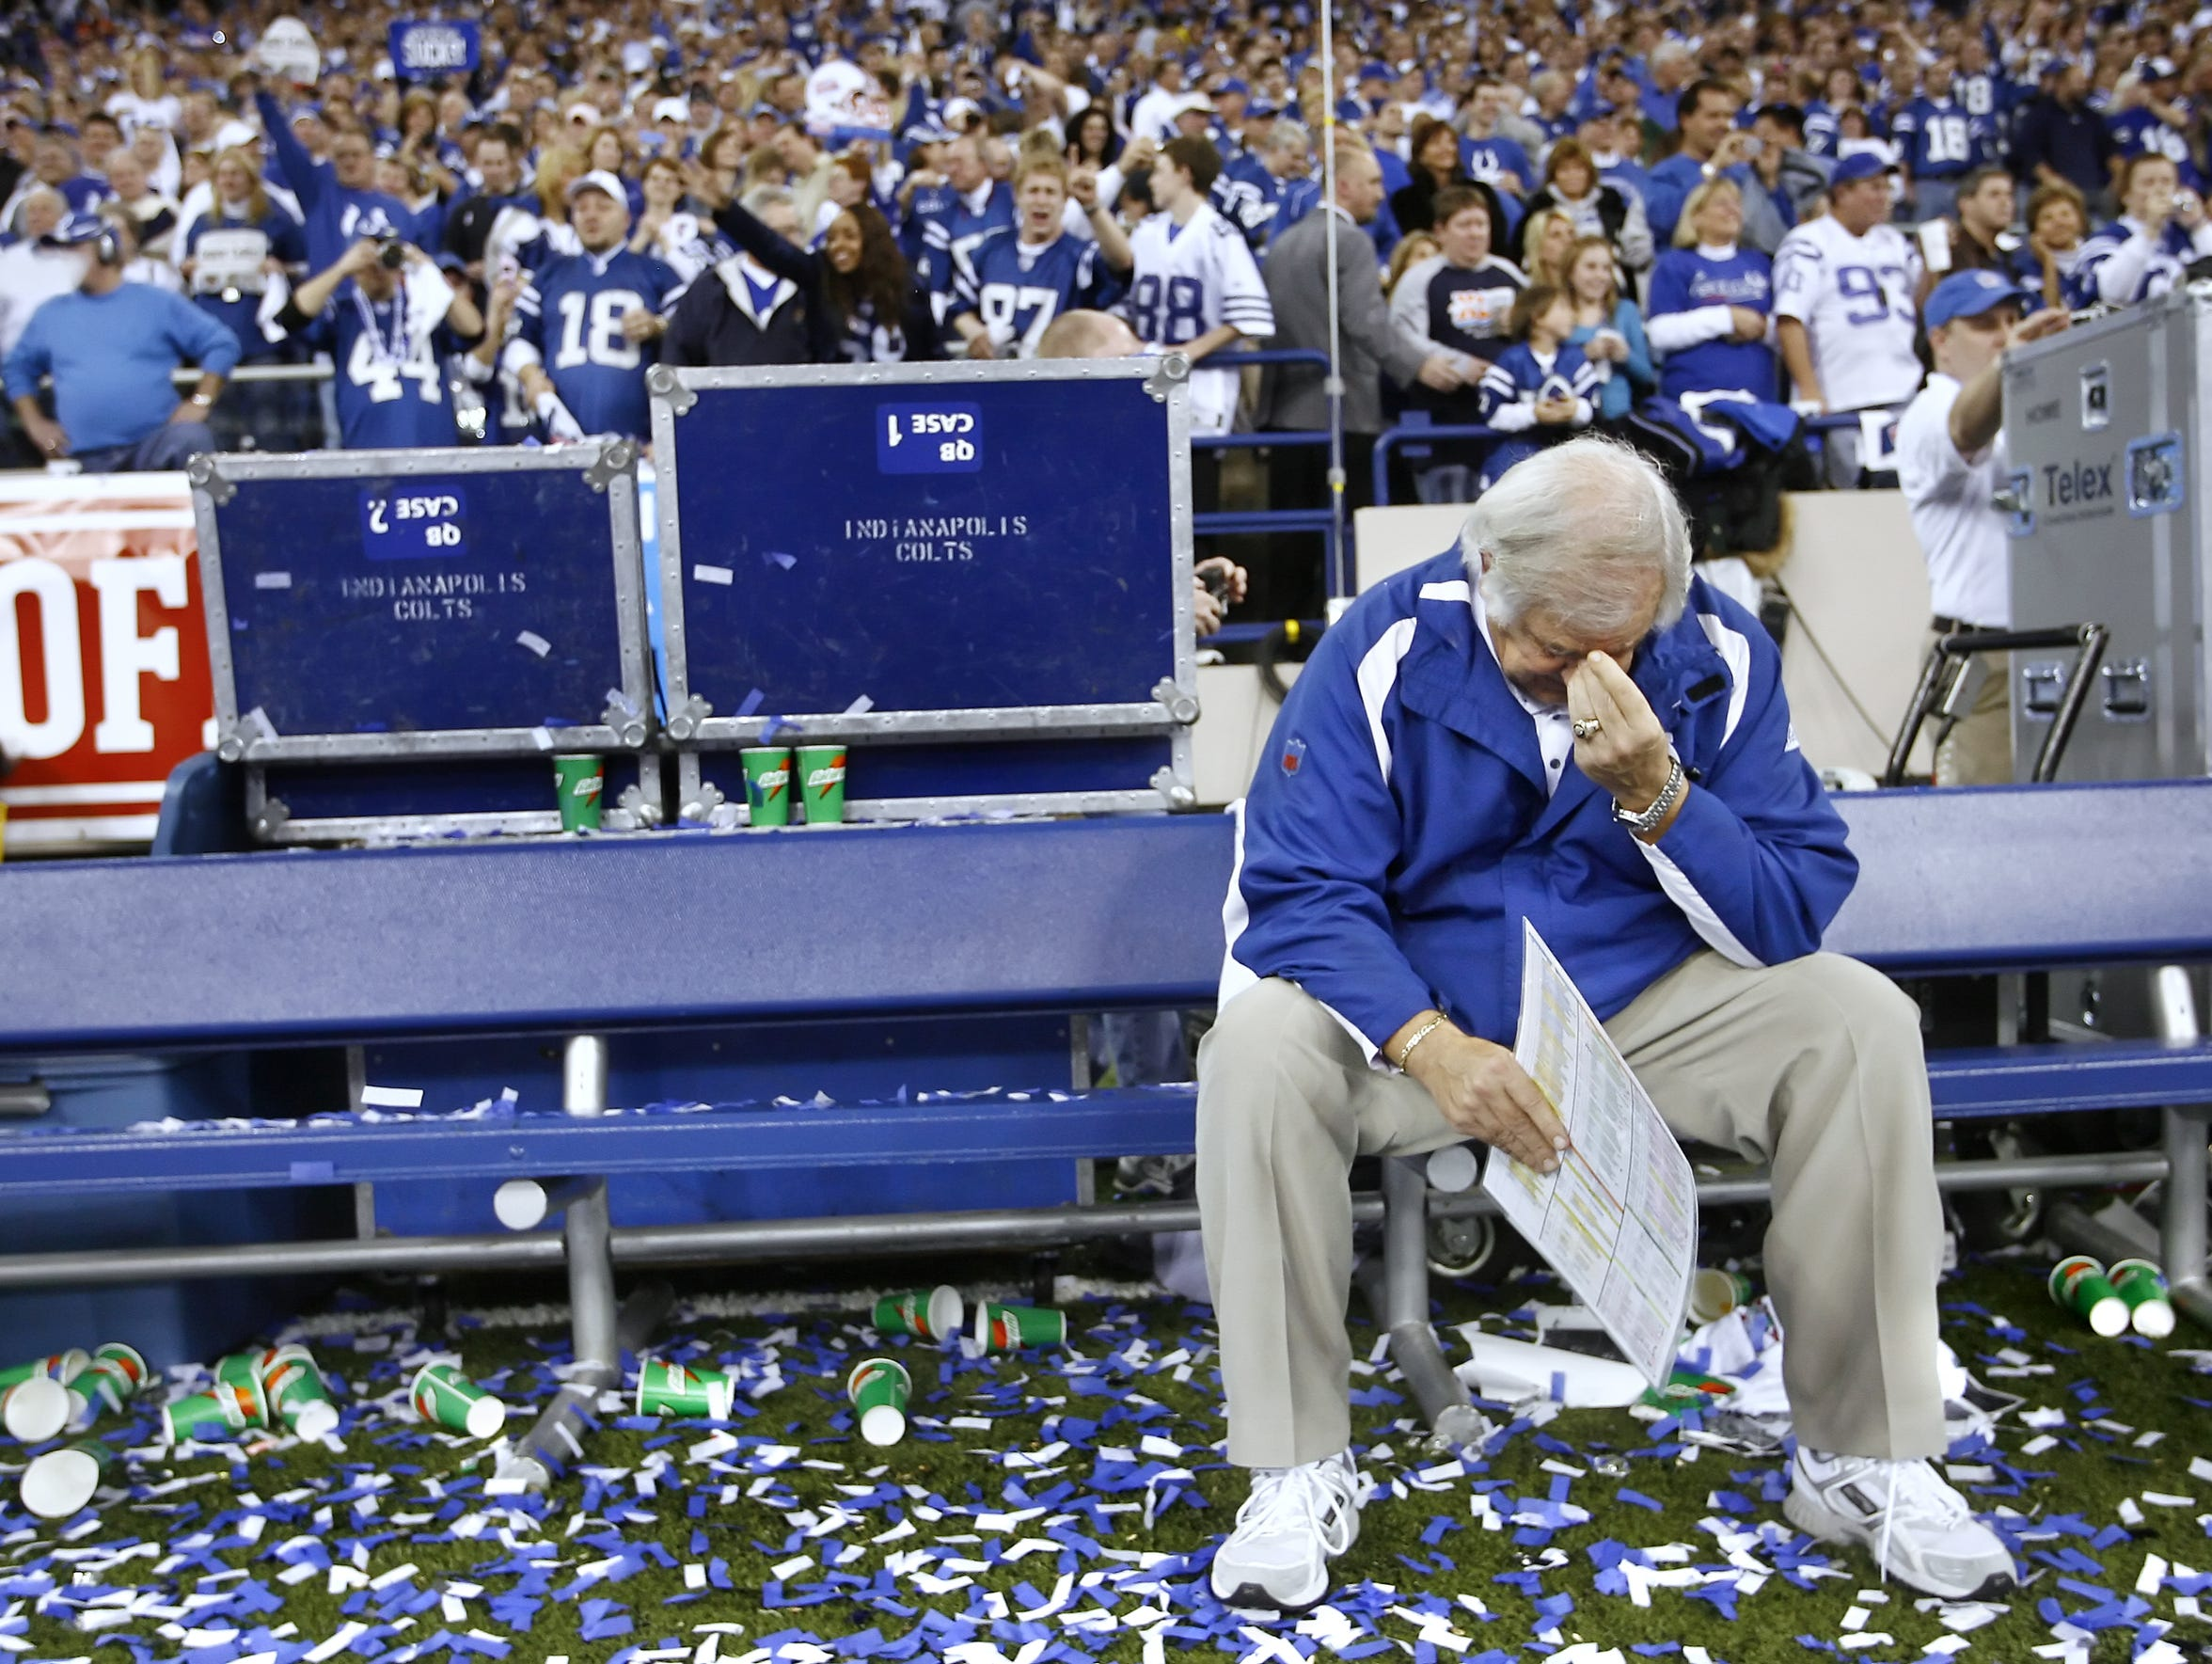 Longtime NFL coach and Colts offensive coordinator